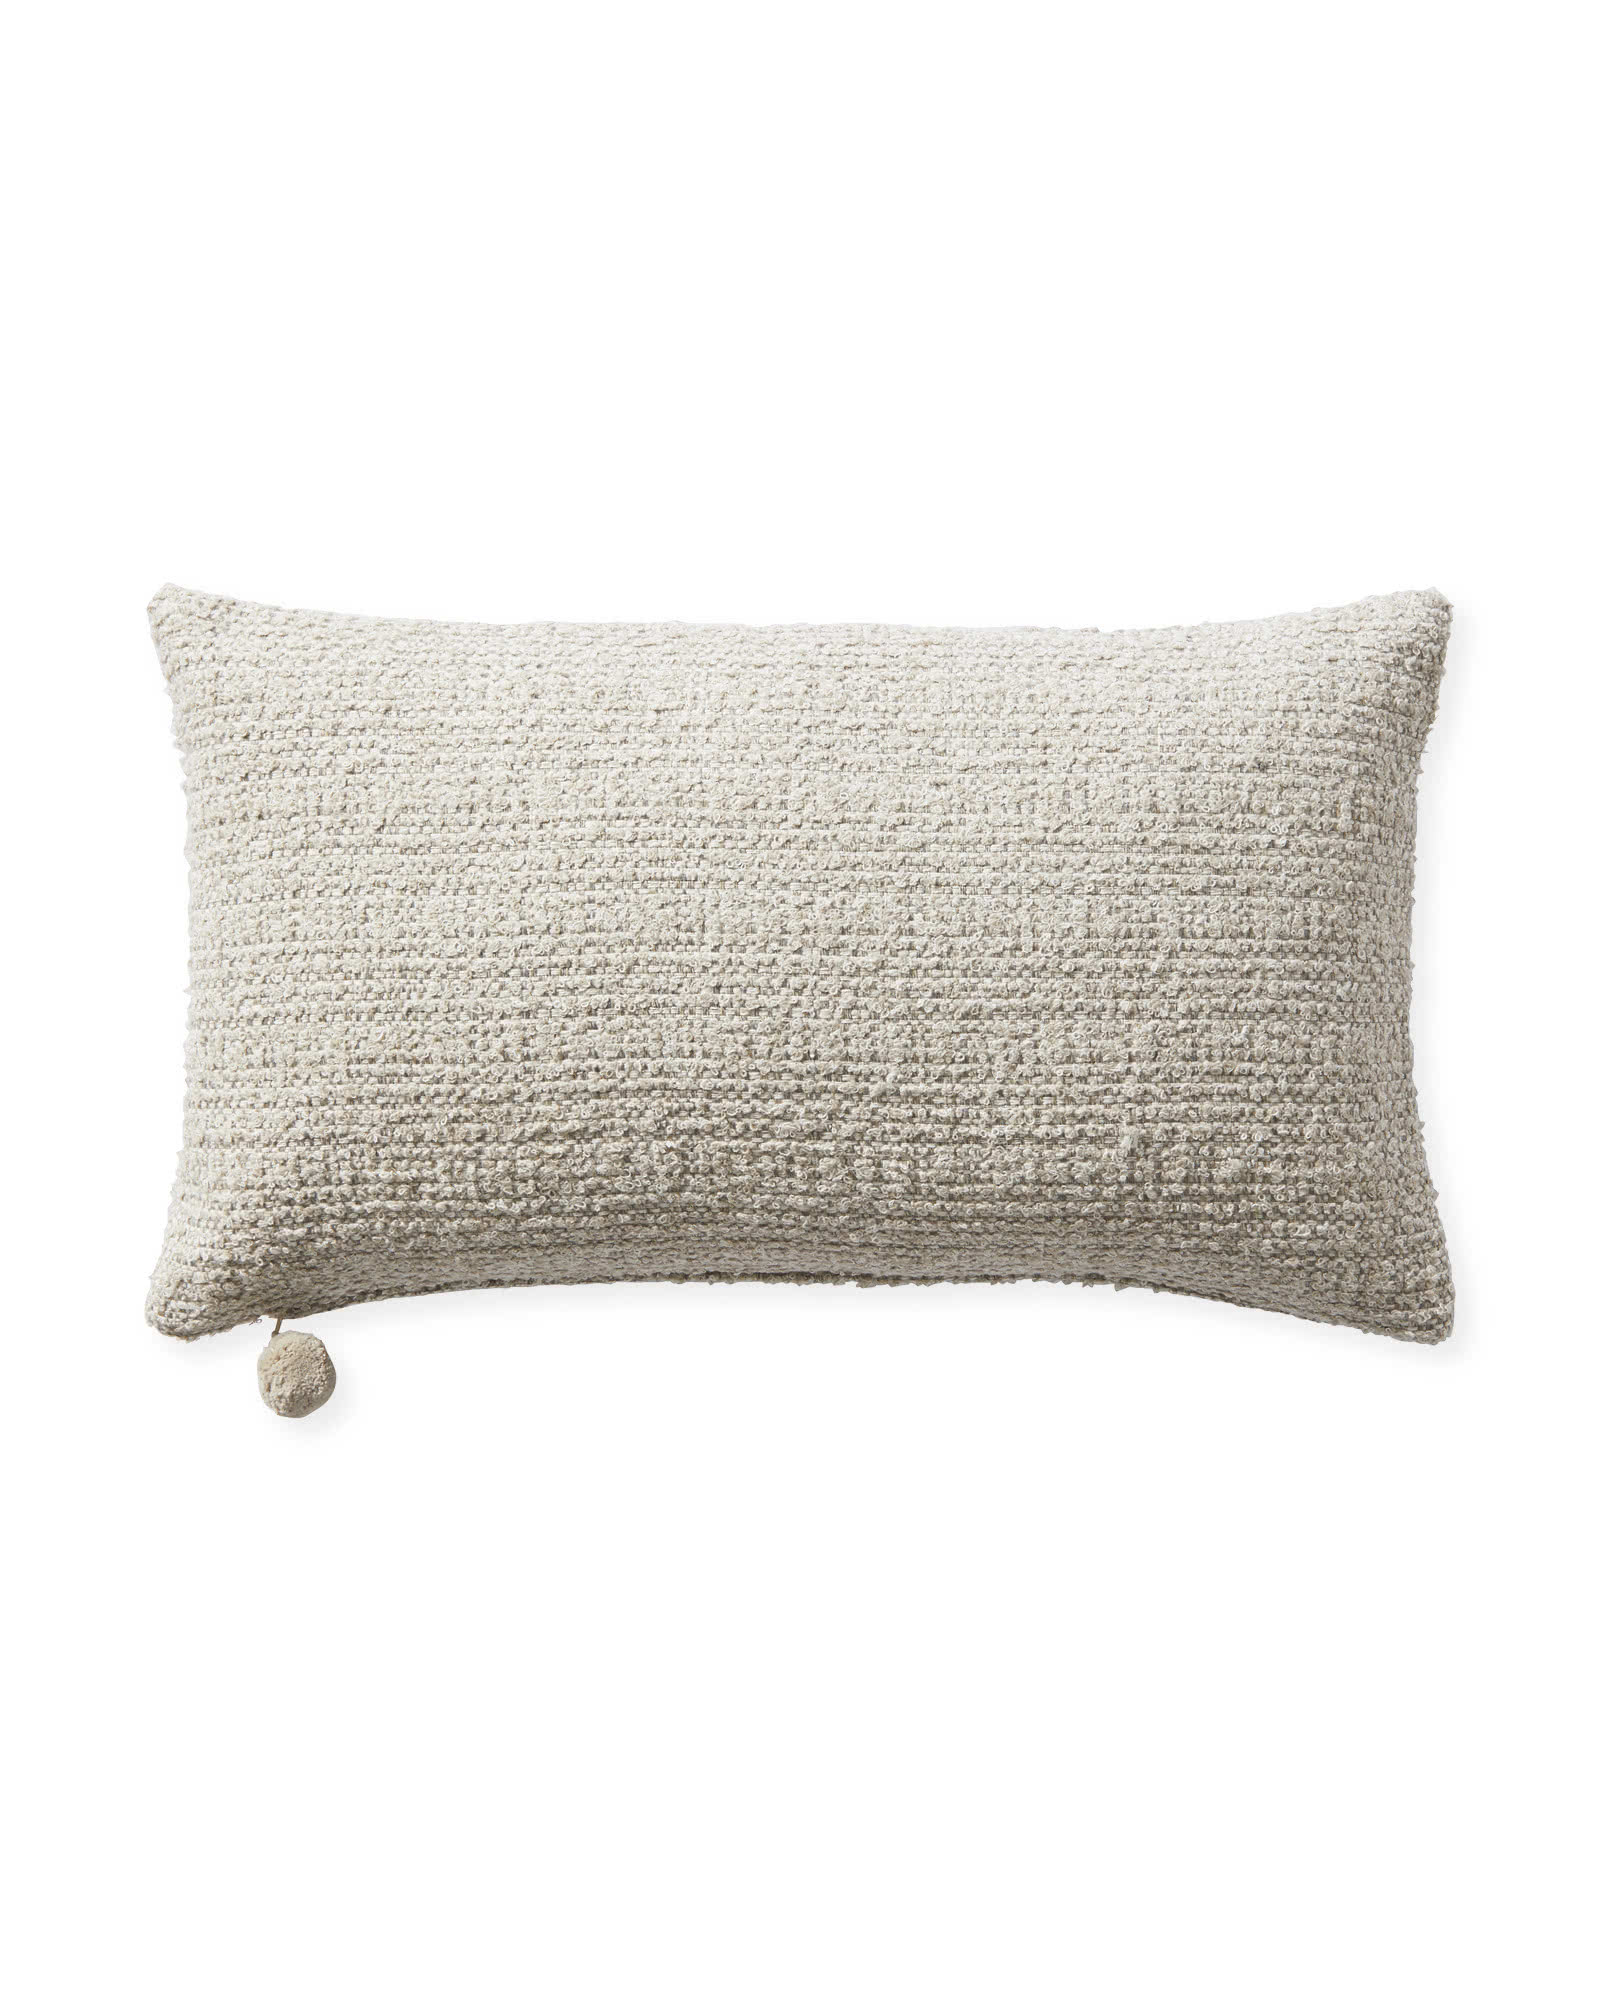 Perennials Performance Textured Loop Pillow Cover, Sand